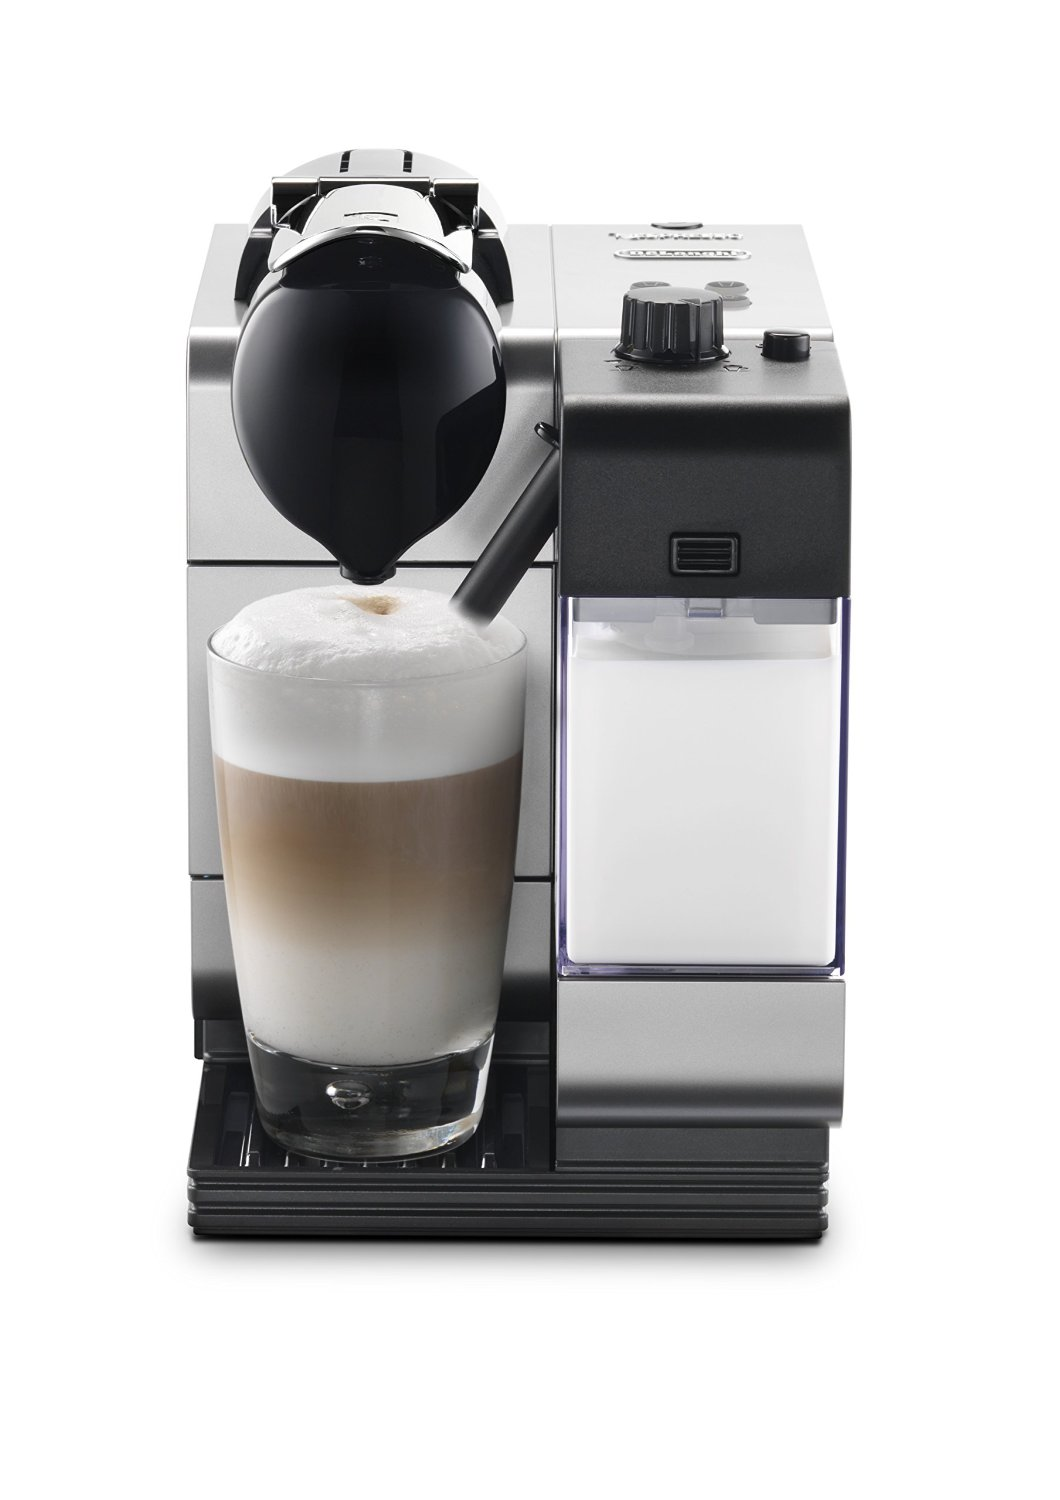 Advantages and disadvantages of a capsule coffee machine